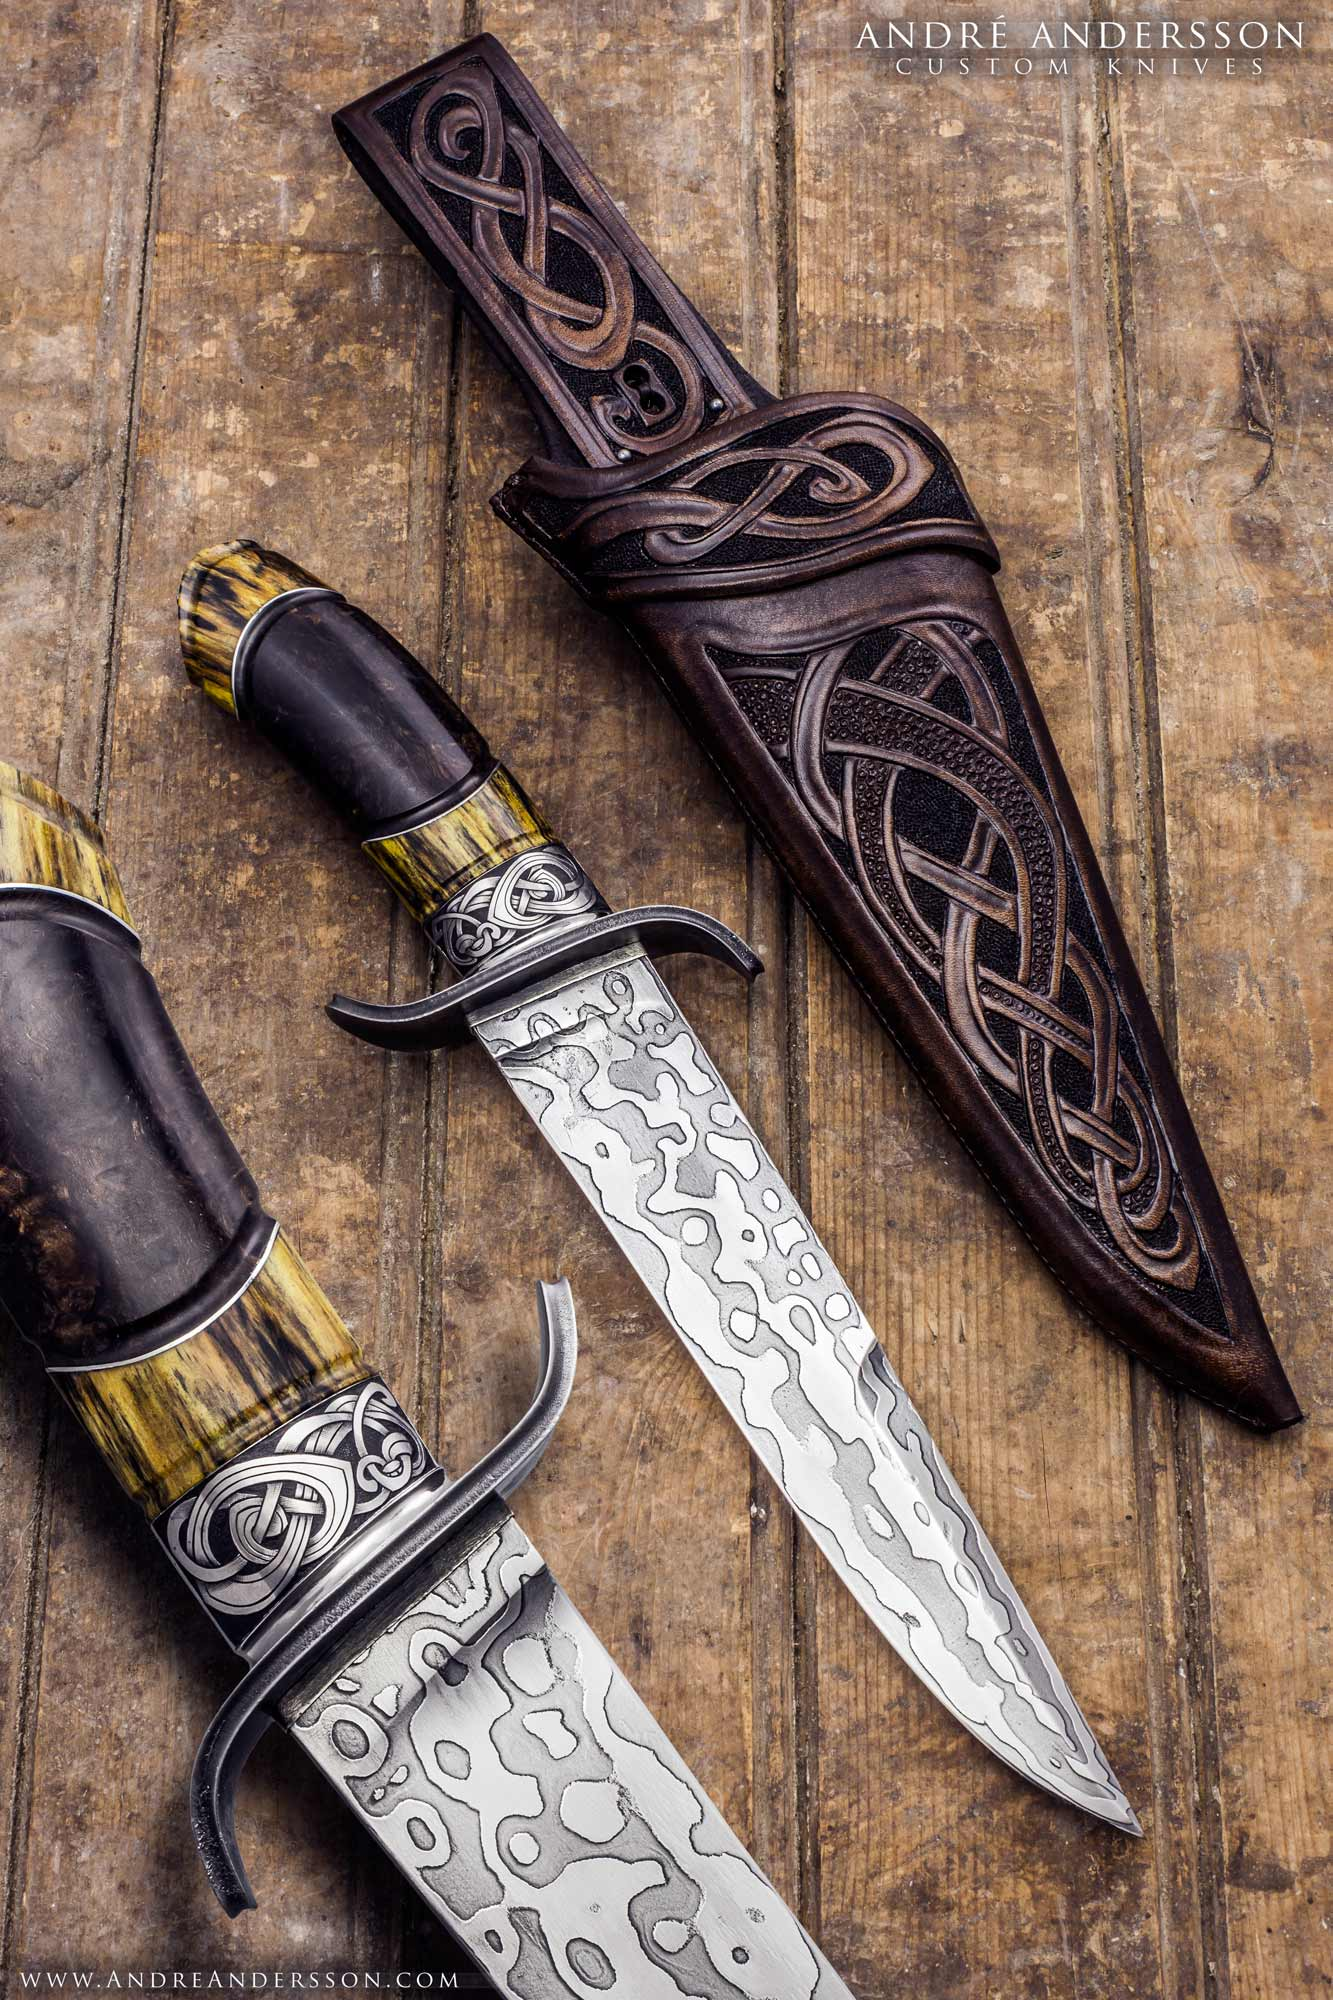 Balders Bowie André Andersson Custom Knives